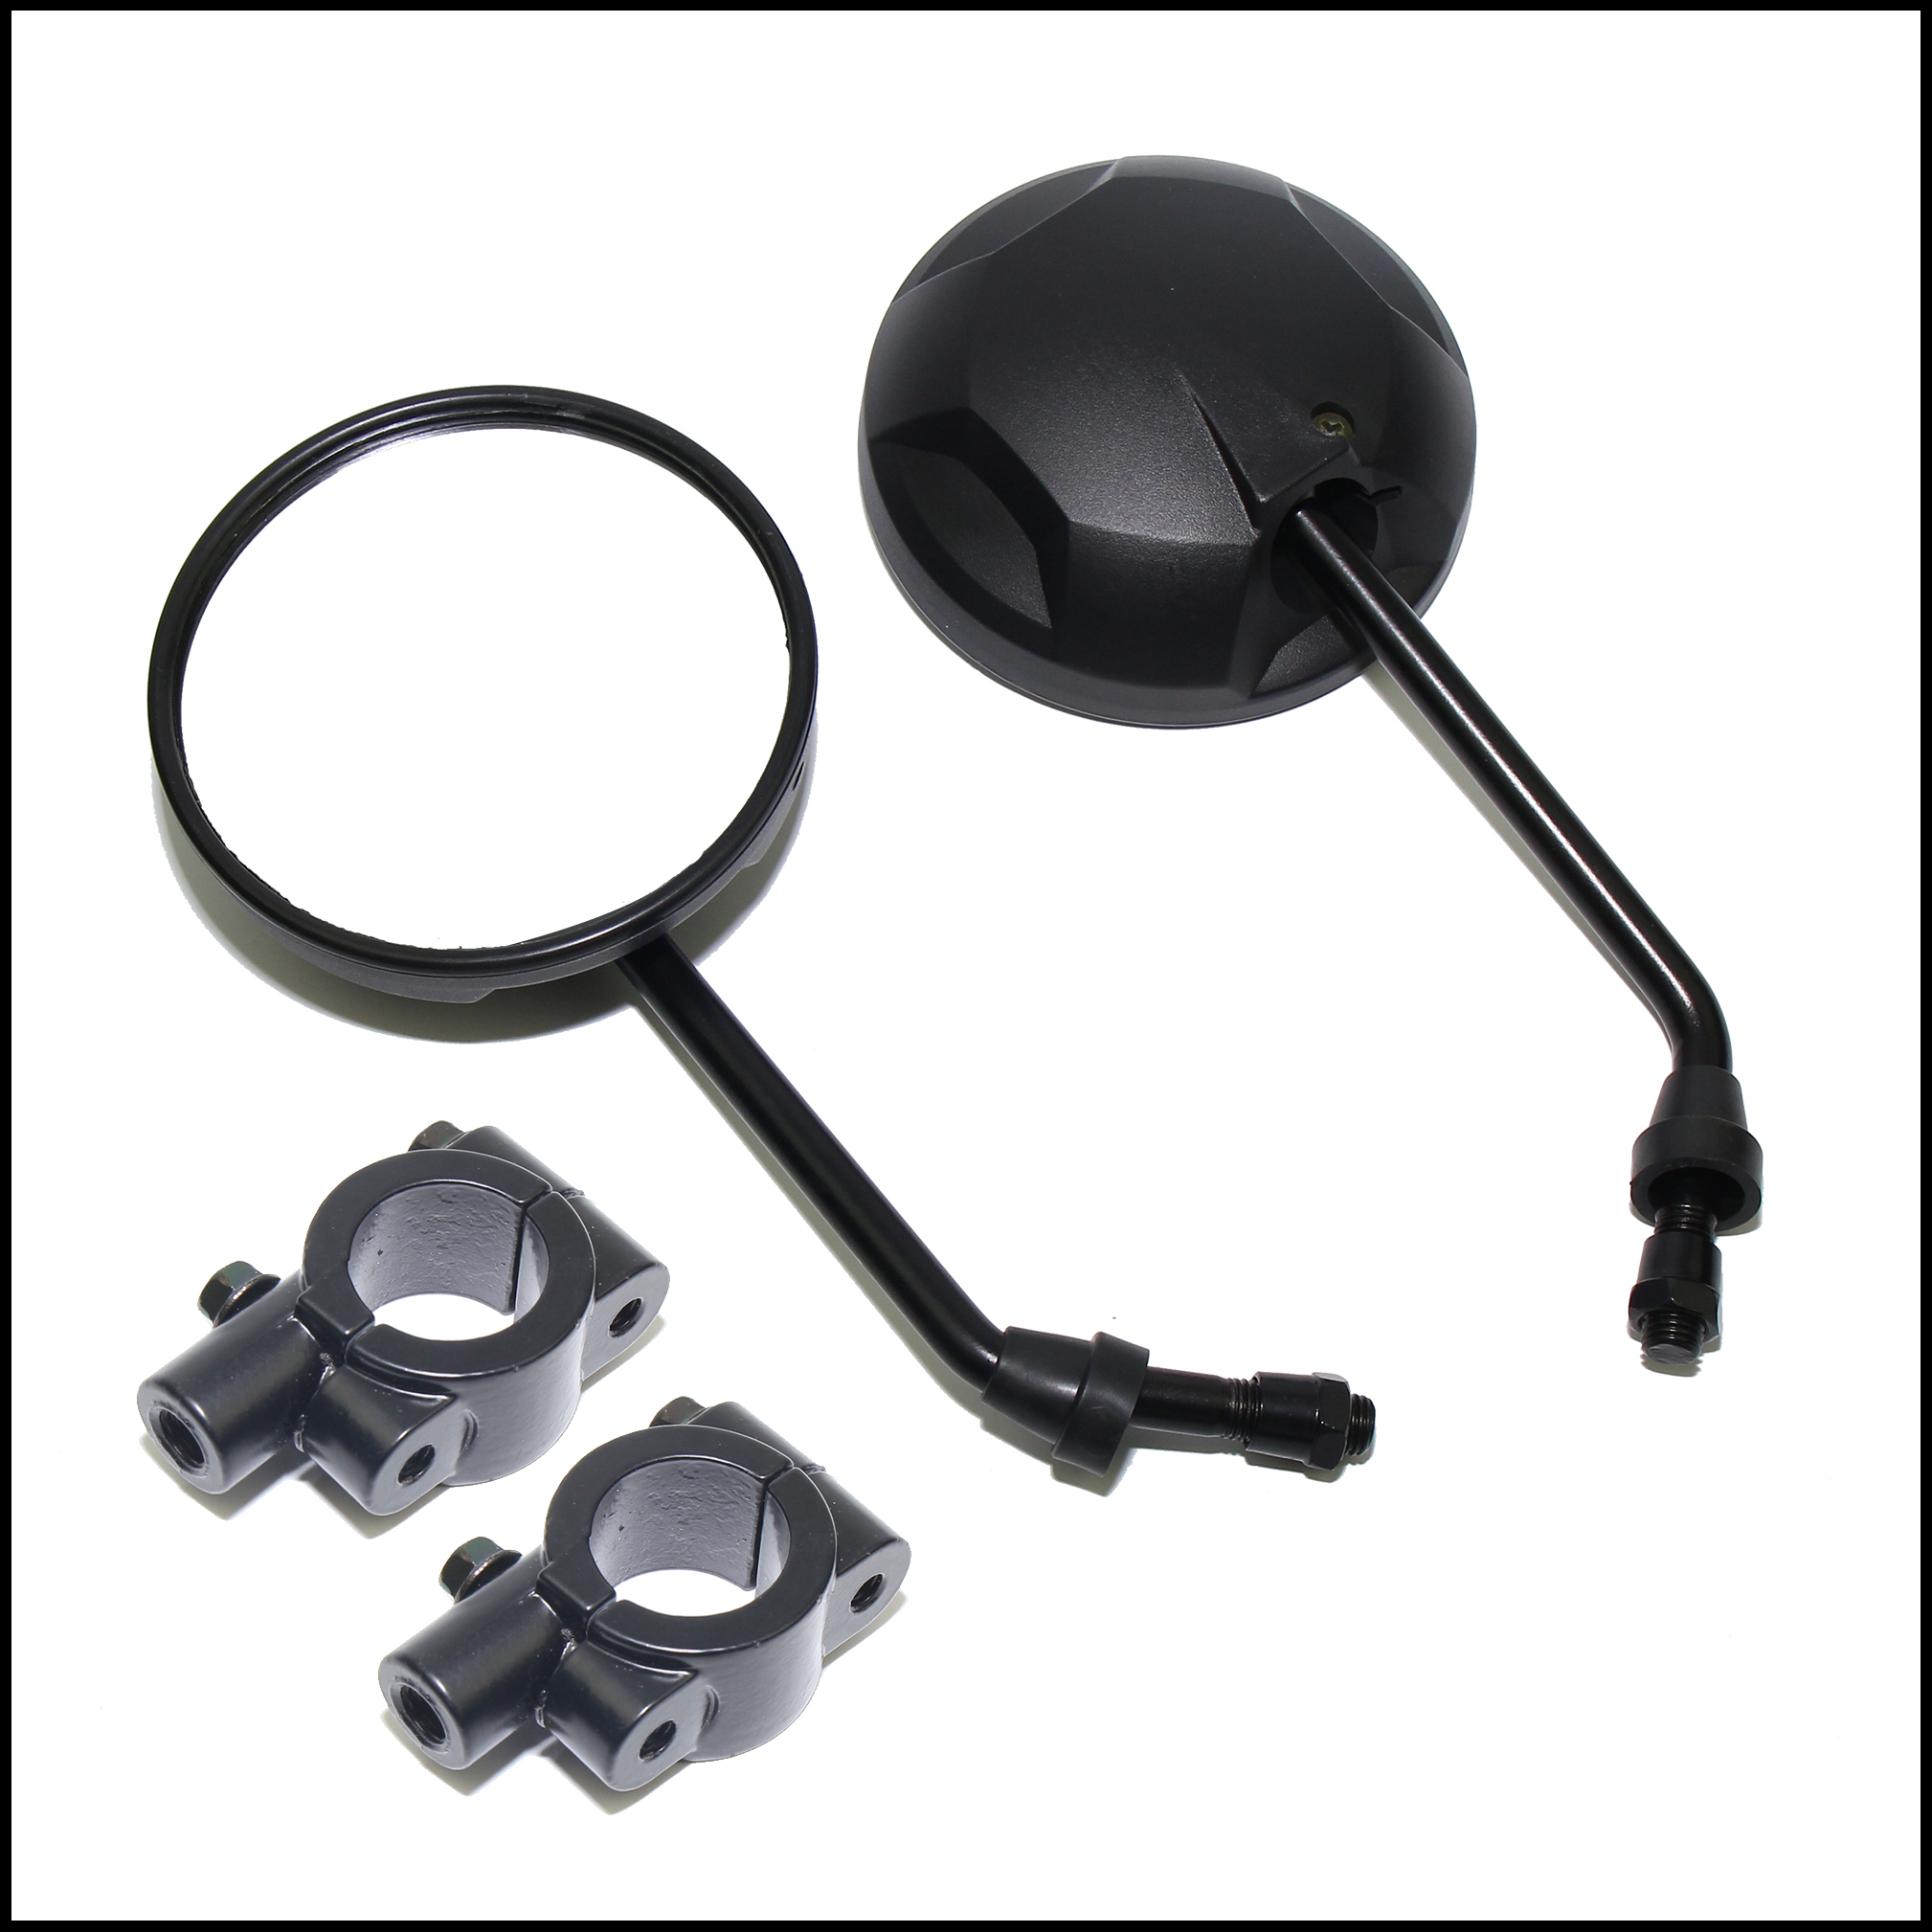 Large New Rearview Side Mirror Universal For 10mm bolts 4 ATV Quad Pit Dirt Bike